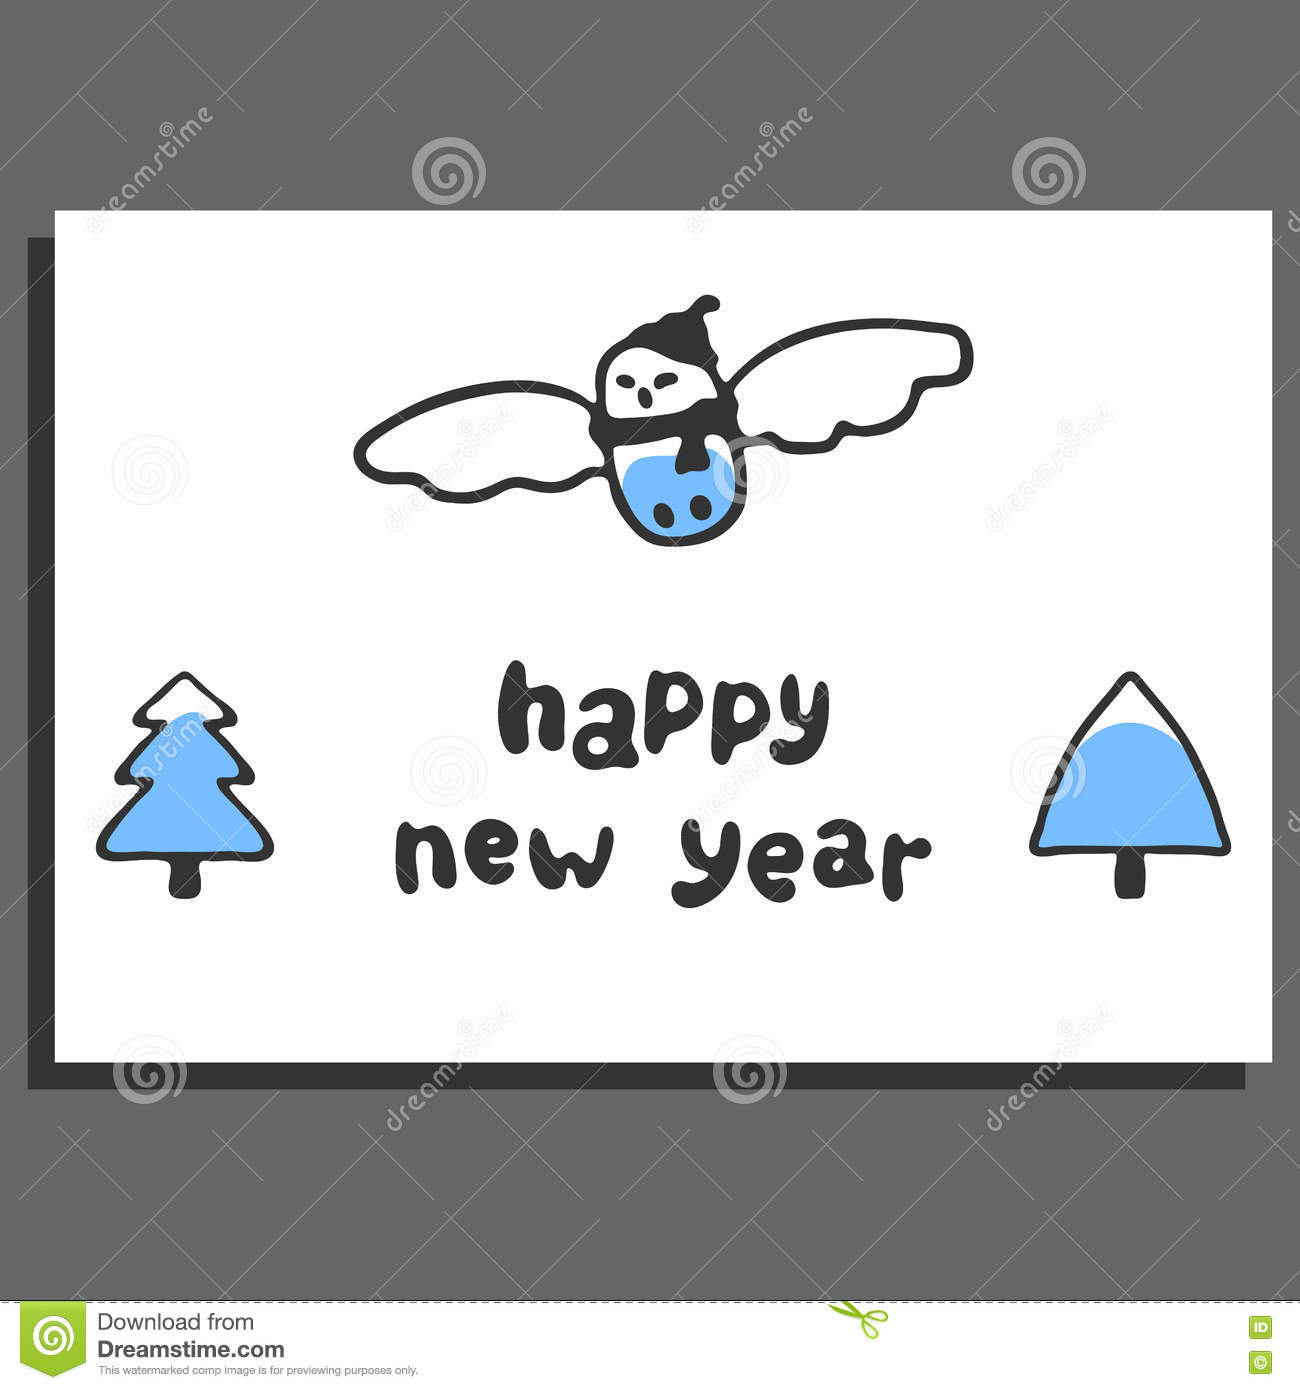 Happy New Year Greeting Card With Cute Cartoon Snowy Owl Stock ...